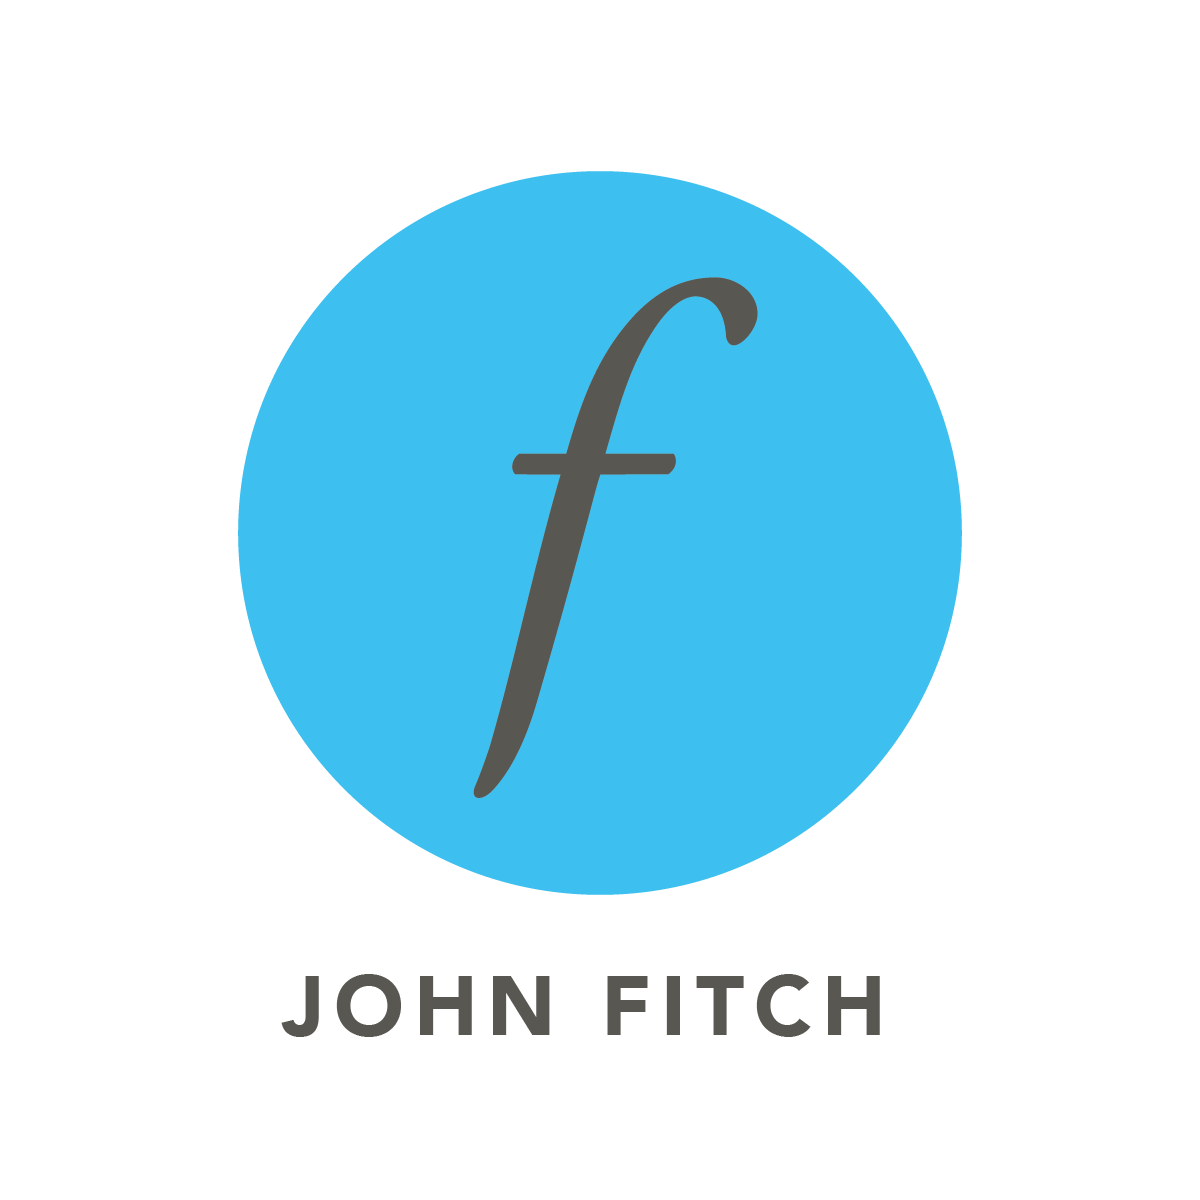 John Fitch - Art Direction / Creative Direction / User Experience / User Interface